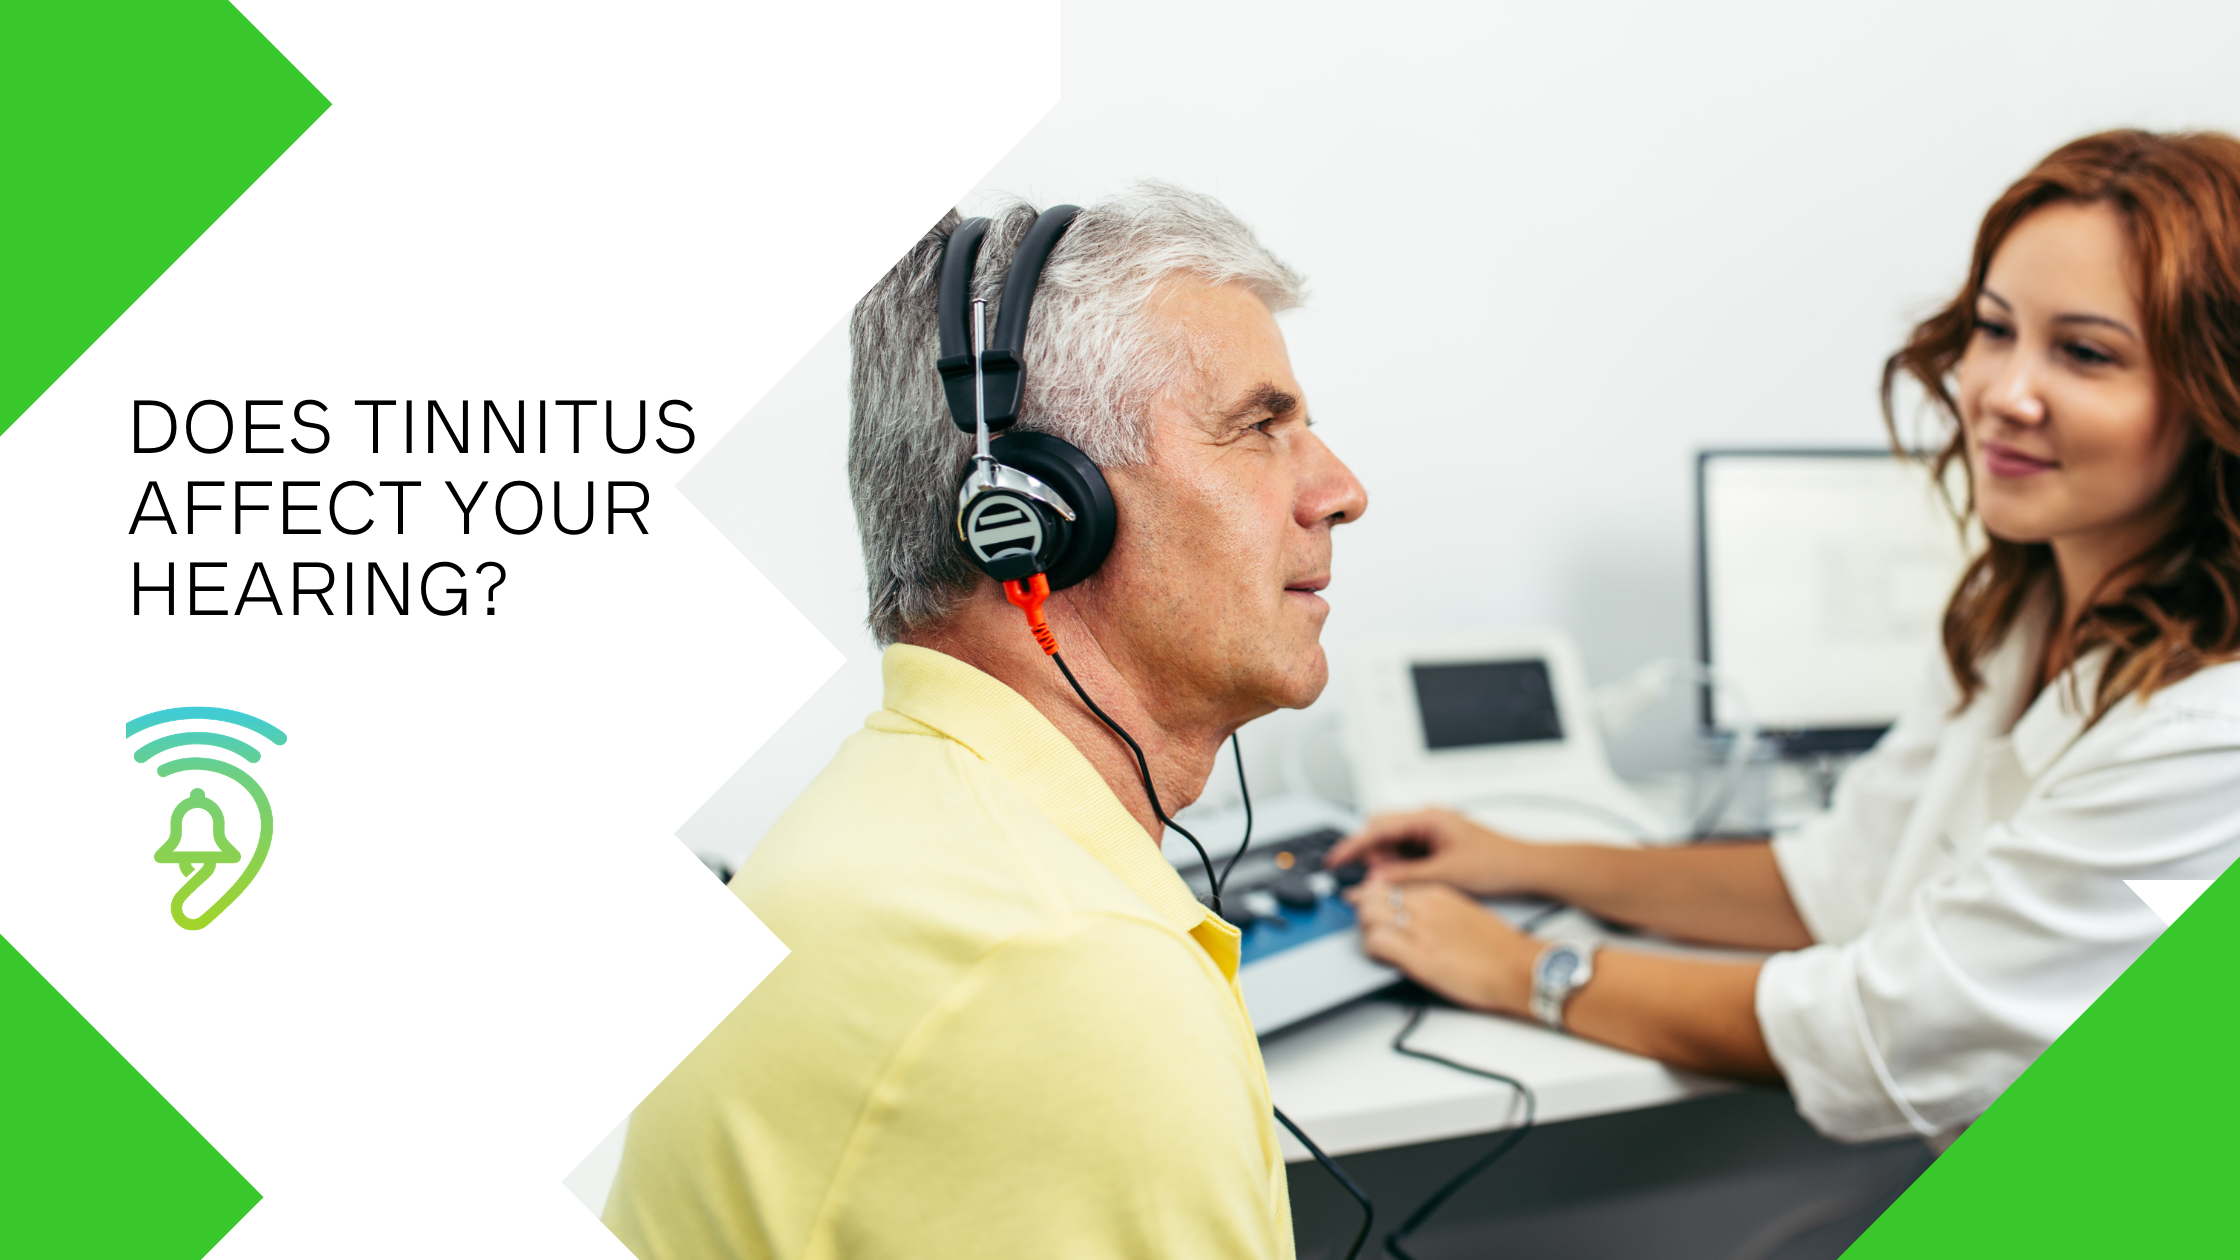 tinnitus affect your hearing